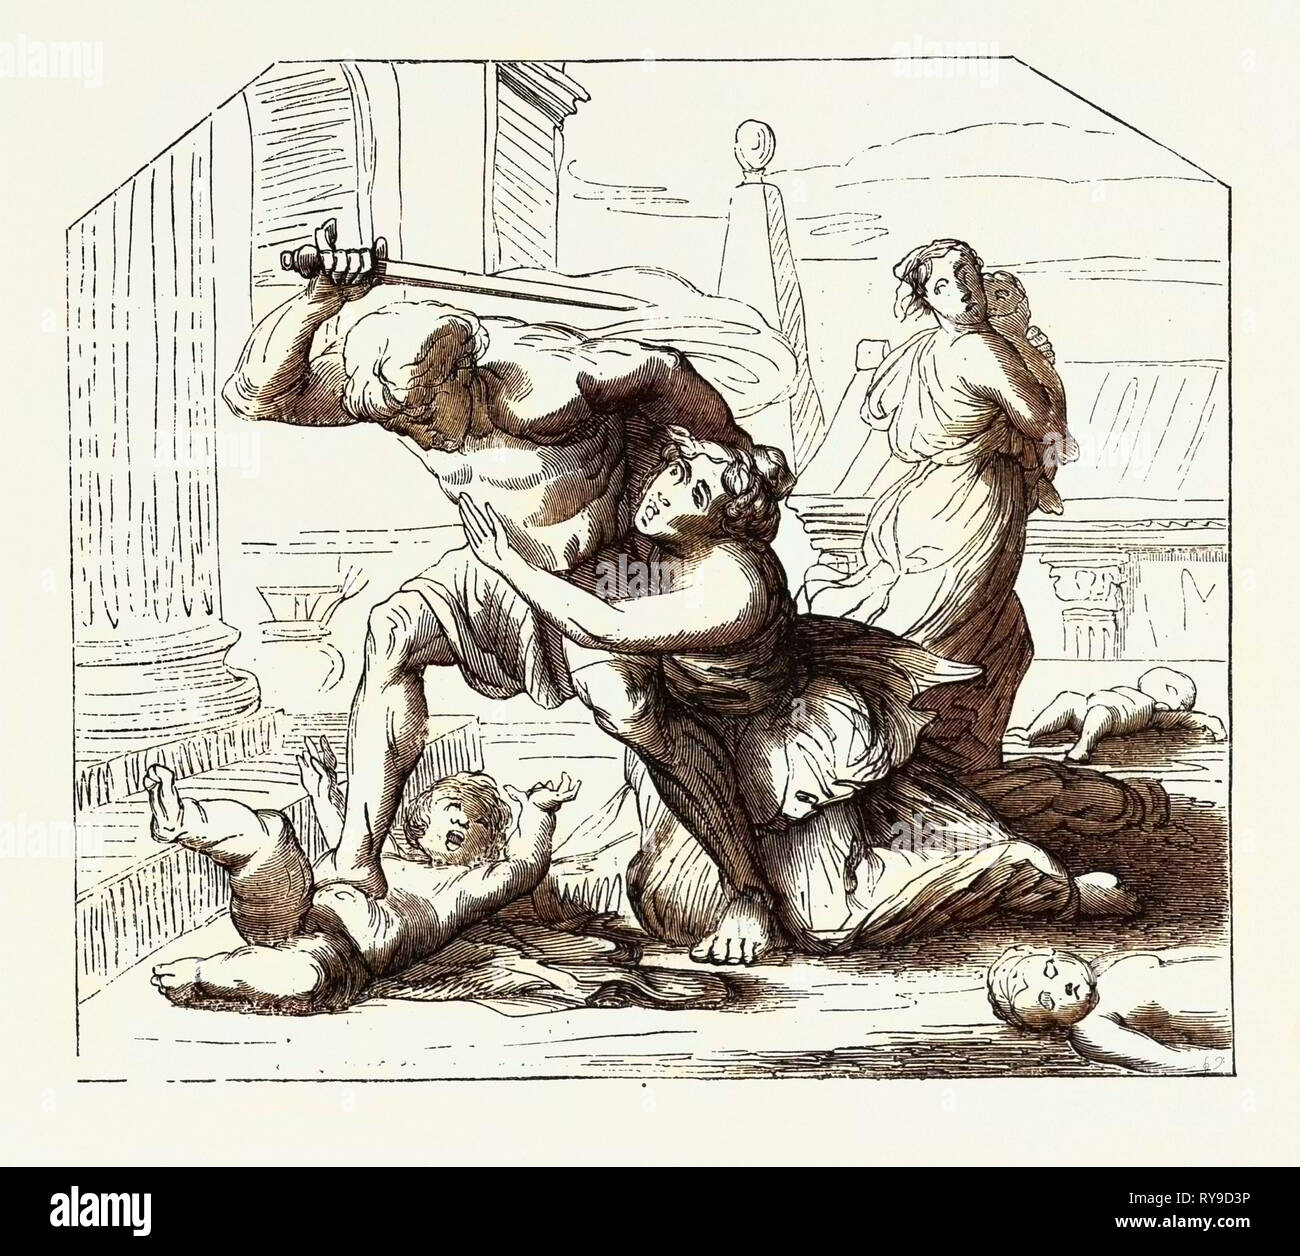 Massacre of the Innocents by Nicolas Poussin: Primitive  sketch. engraving 1855 - Stock Image